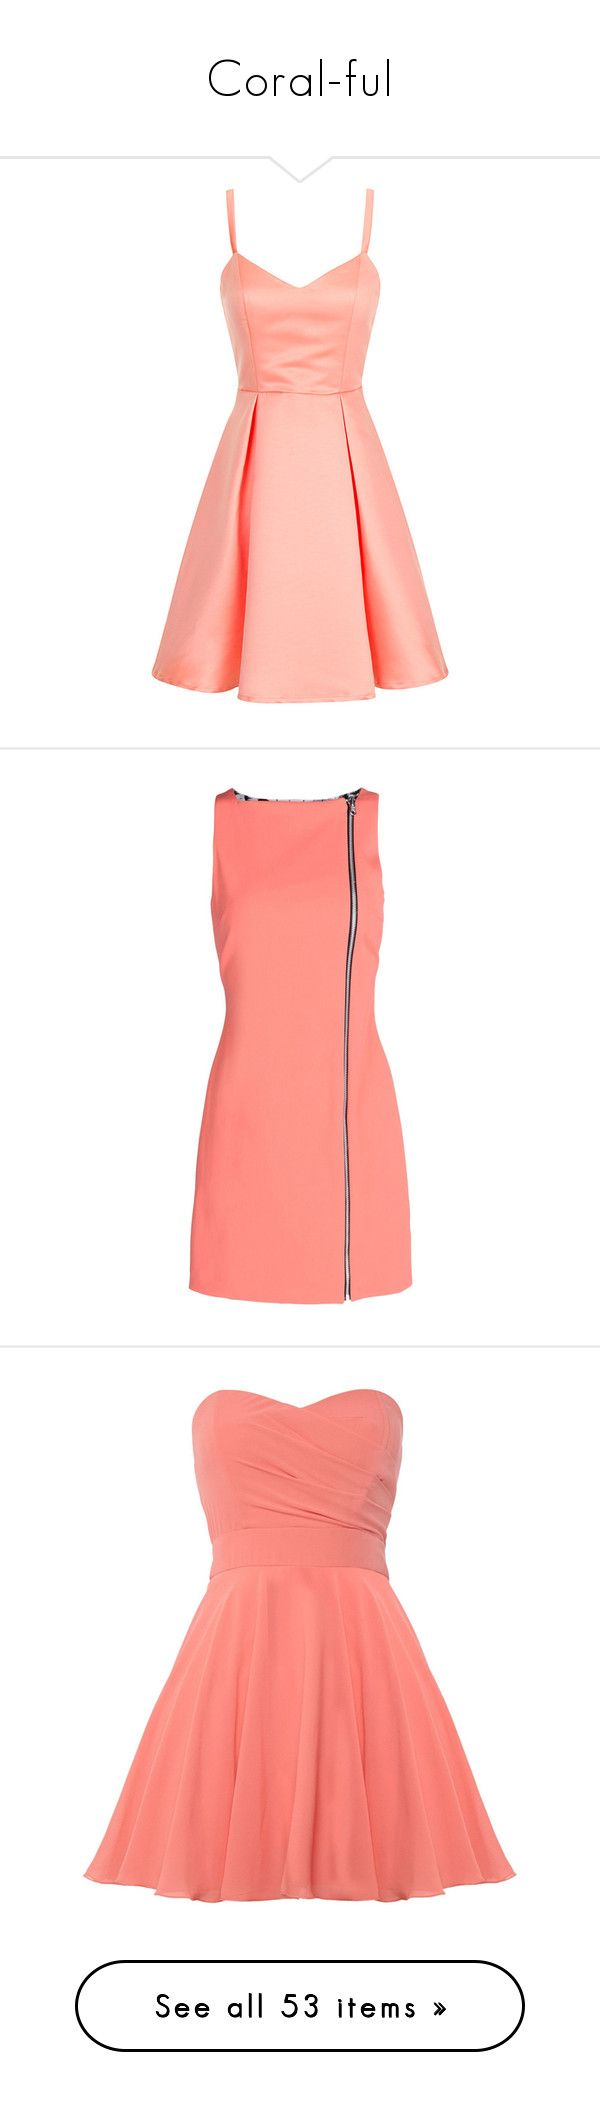 """Coral-ful"" by mrseclipse ❤ liked on Polyvore featuring dresses, vestidos, short dresses, pink, coral, coral cocktail dress, coral dress, red cocktail dress, bow back dress and opening ceremony dress"